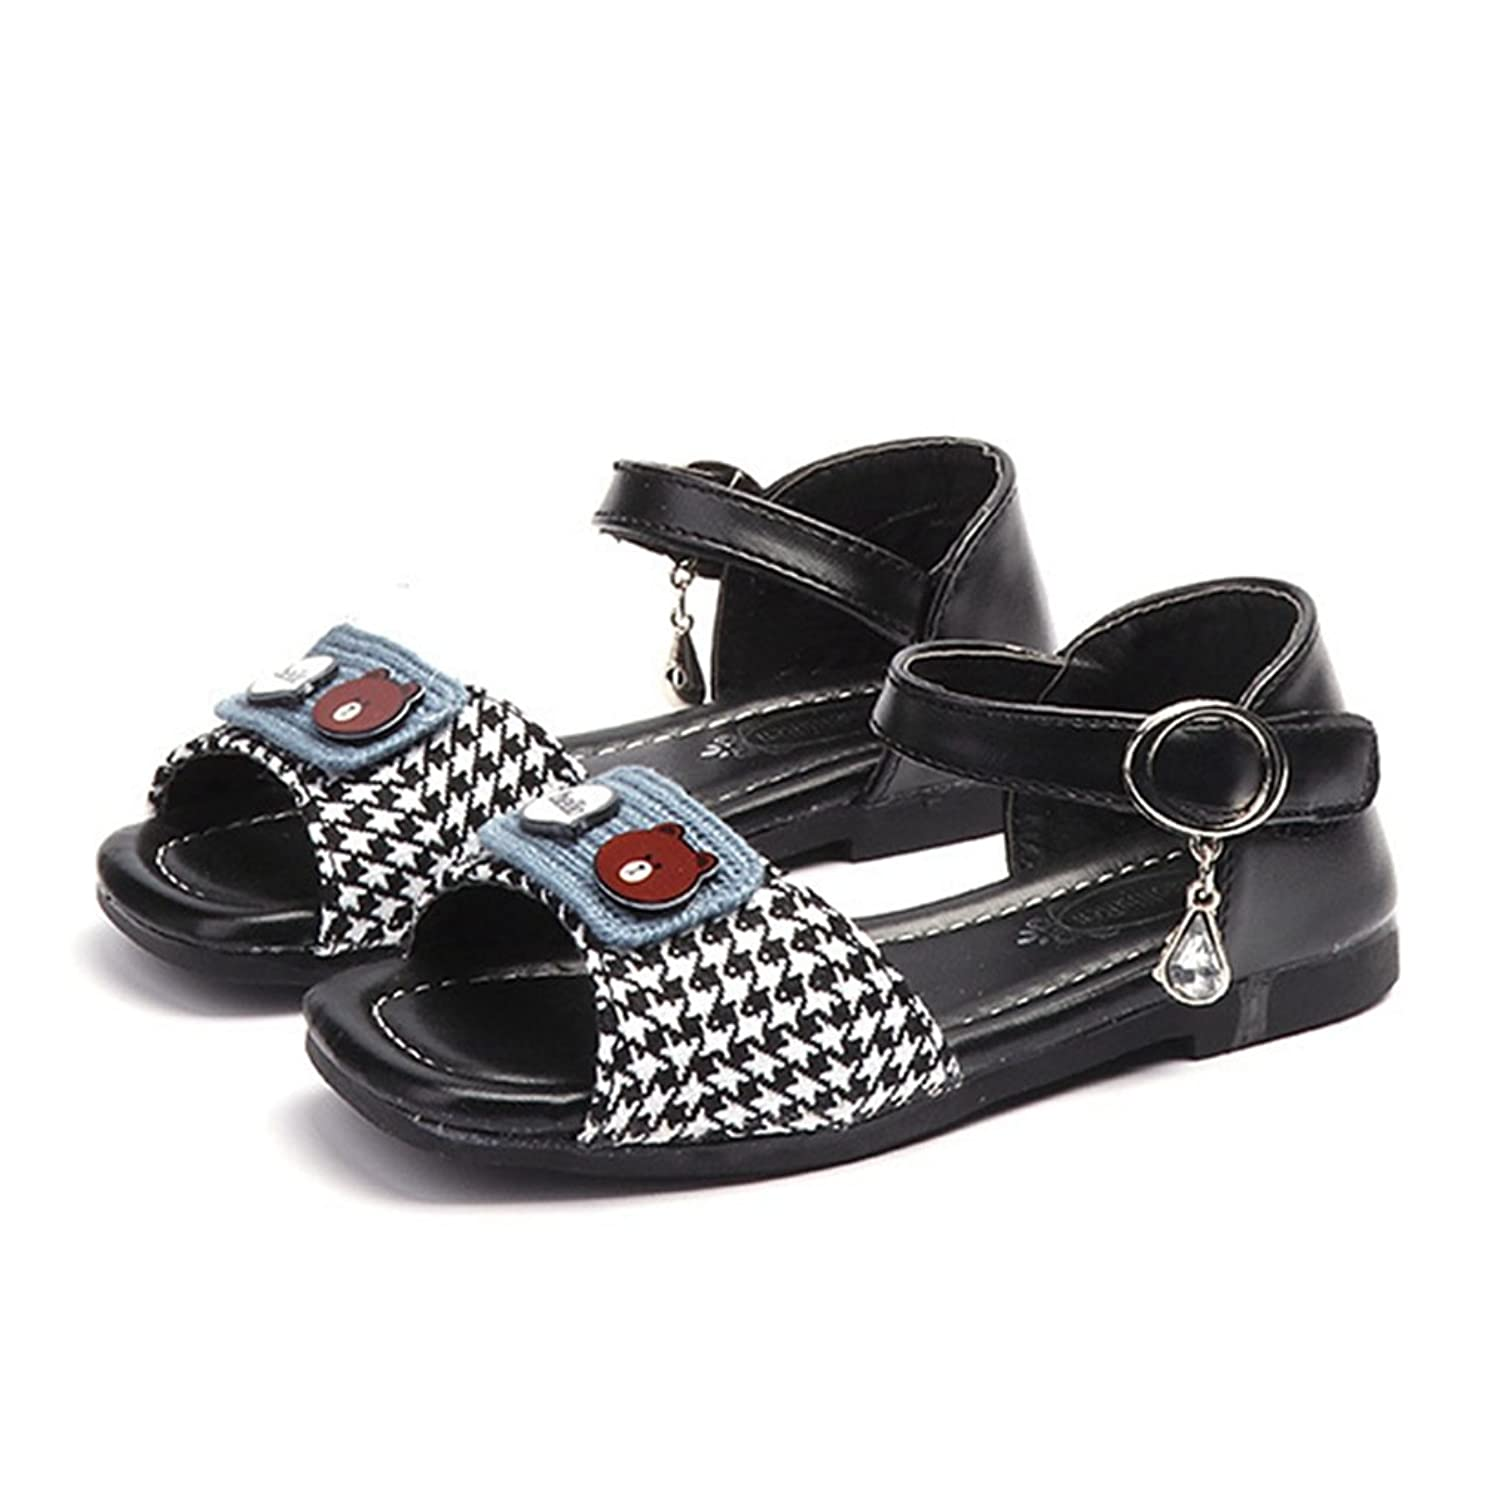 CYBLING Girls Flat Sandals Casual Non-Slip Open Toe Slide Shoes with Ankle Strap (Toddler/Little Kid)